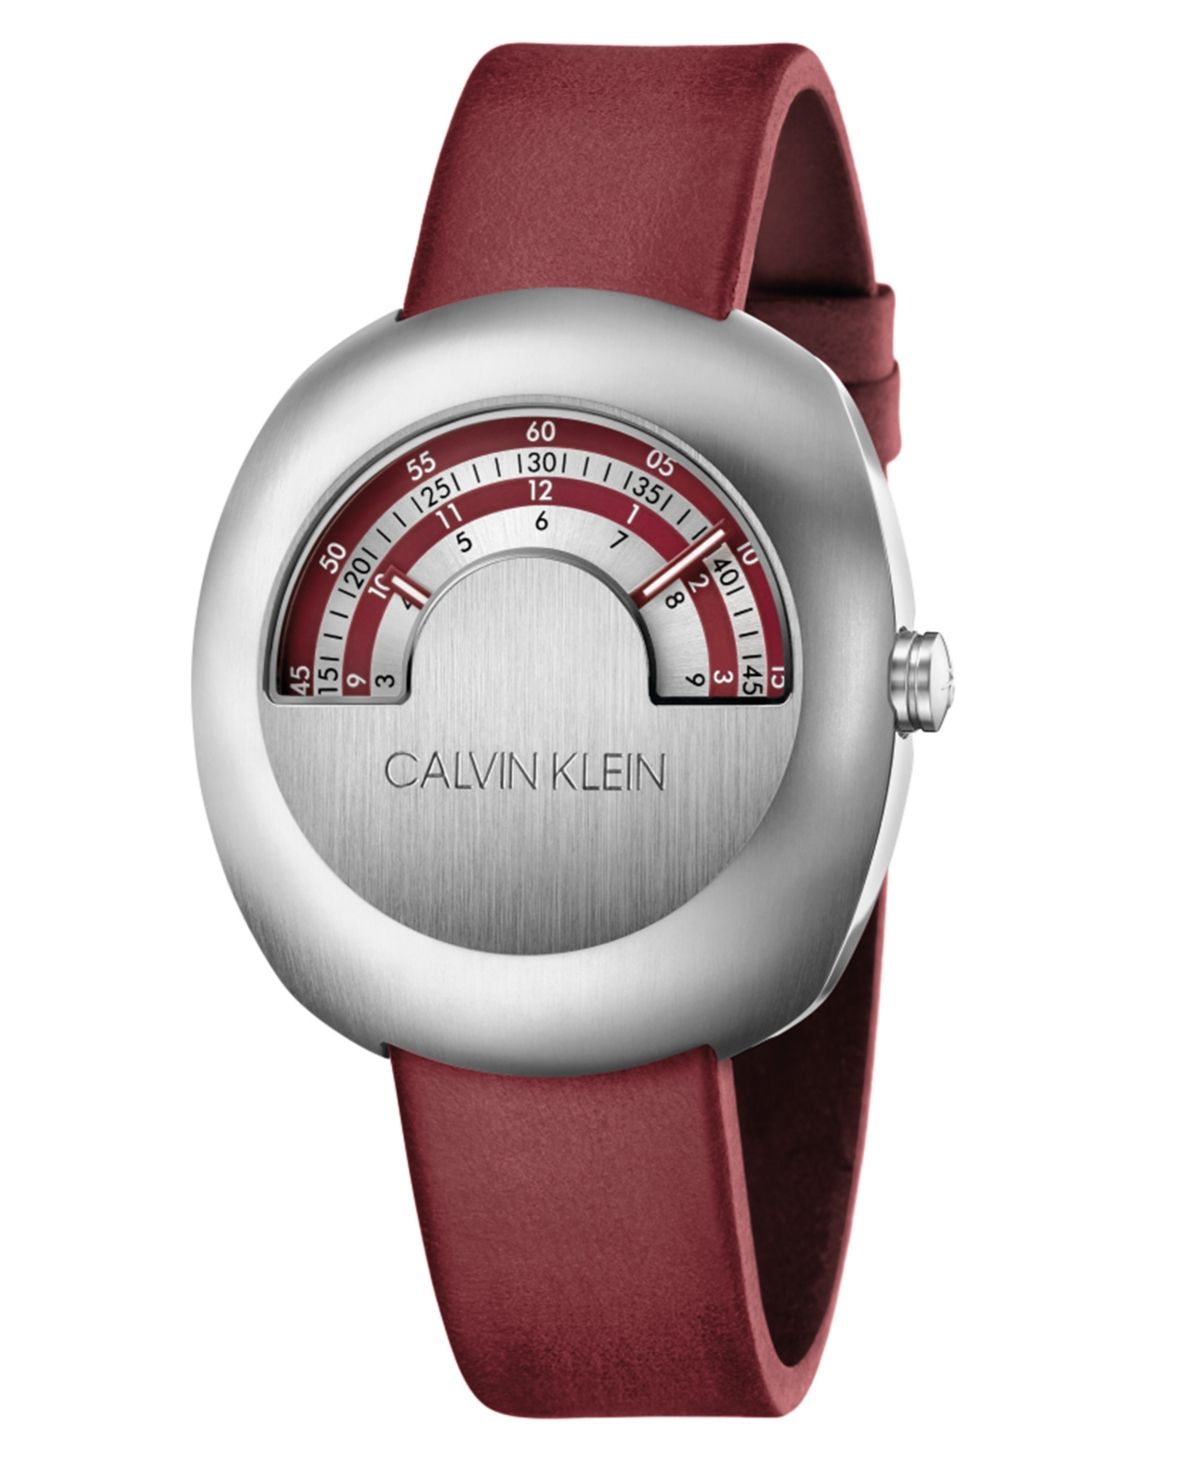 Photo of Calvin Klein Unisex Glimpse Red Leather Strap Watch 45mm & Reviews – All Fine Jewelry – Jewelry & Watches – Macy's